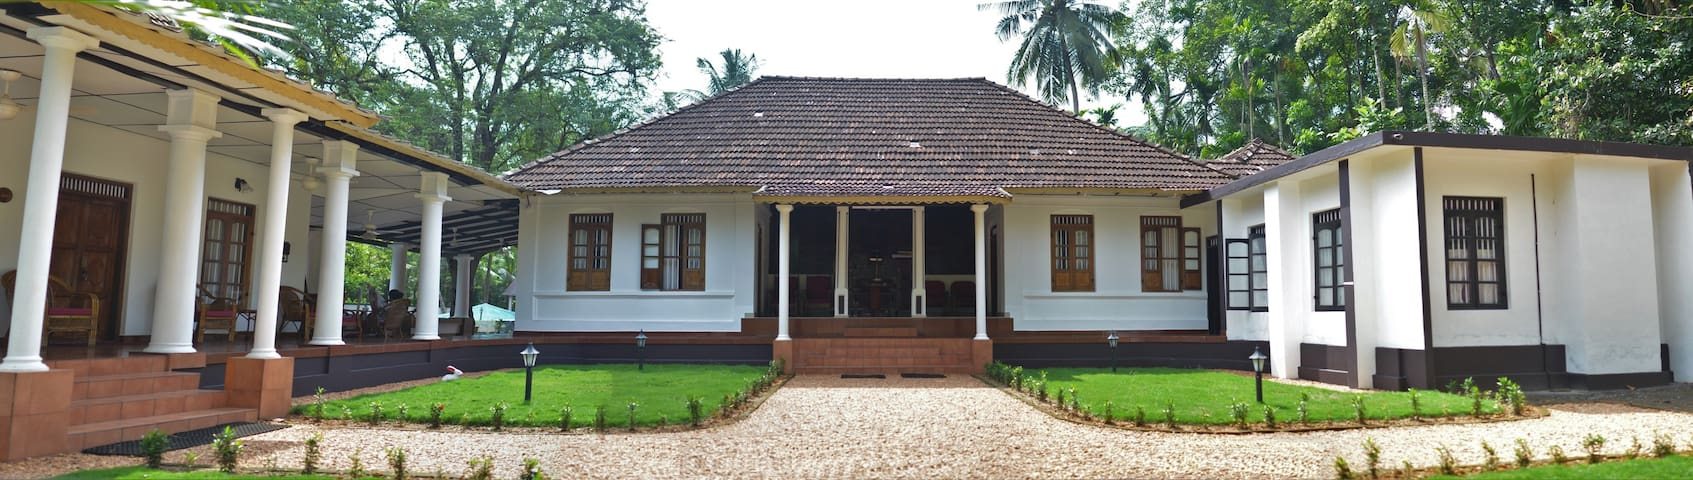 Brookside Heritage Homestay - Radio Muri (Room)